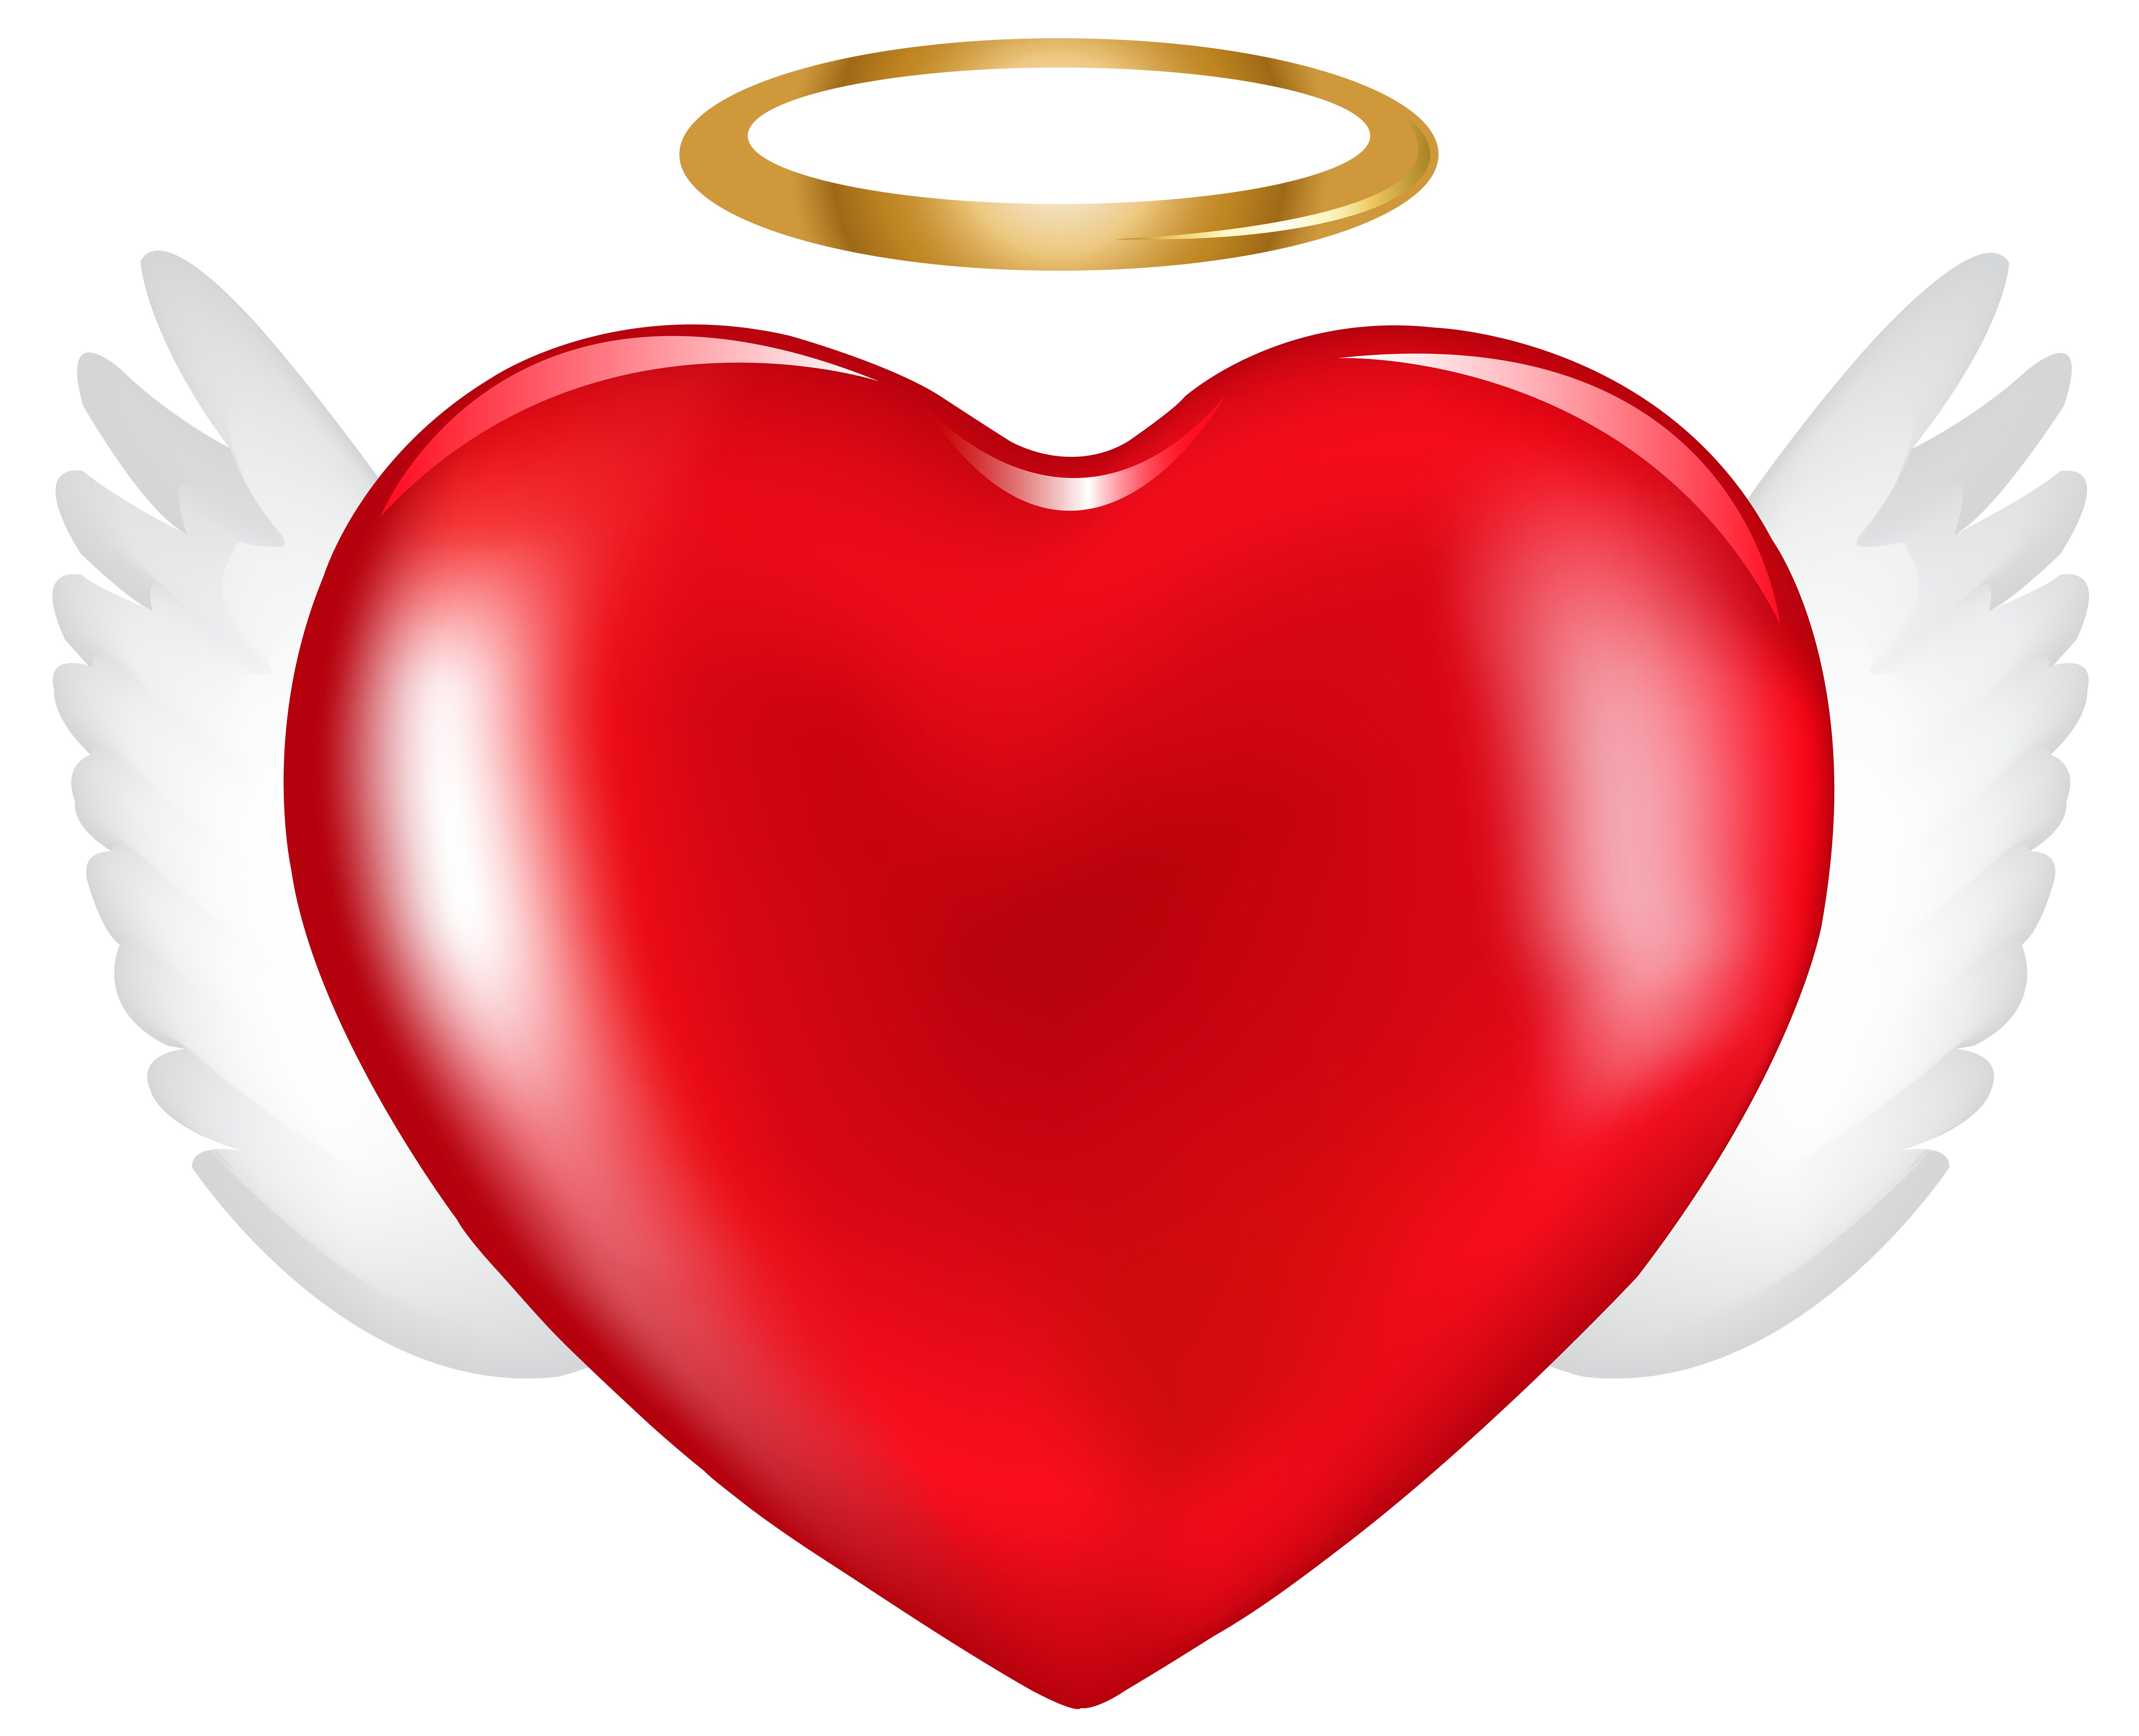 Angel heart clip art. Heart, png clipart graphic free download